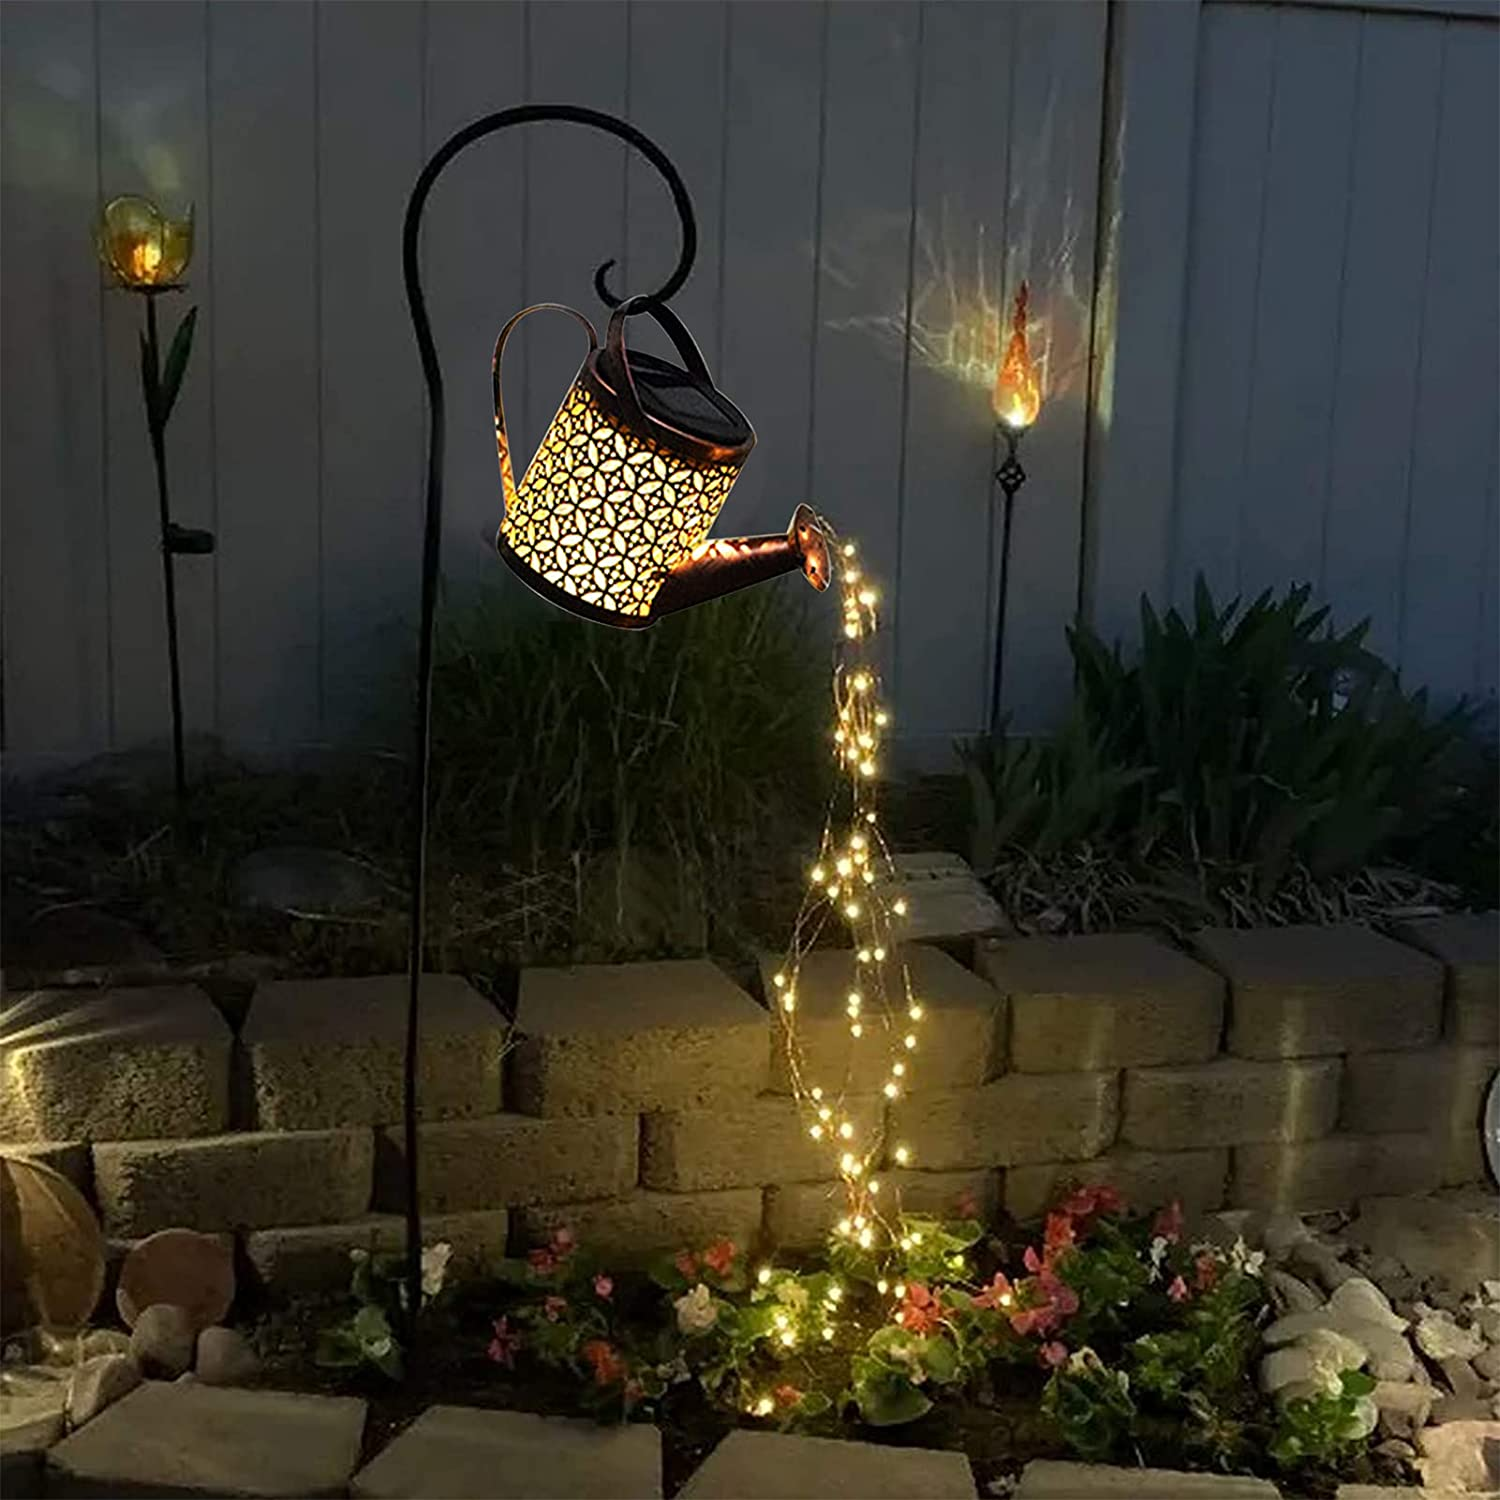 Ankishi LED Garden Shower Lights, Solar Powered Watering Can with Lights, Outdoor Decor Lights Waterfall Vine String Lights Watering Sprinkles Starry Copper String Light for Garden Yard Plant Vines